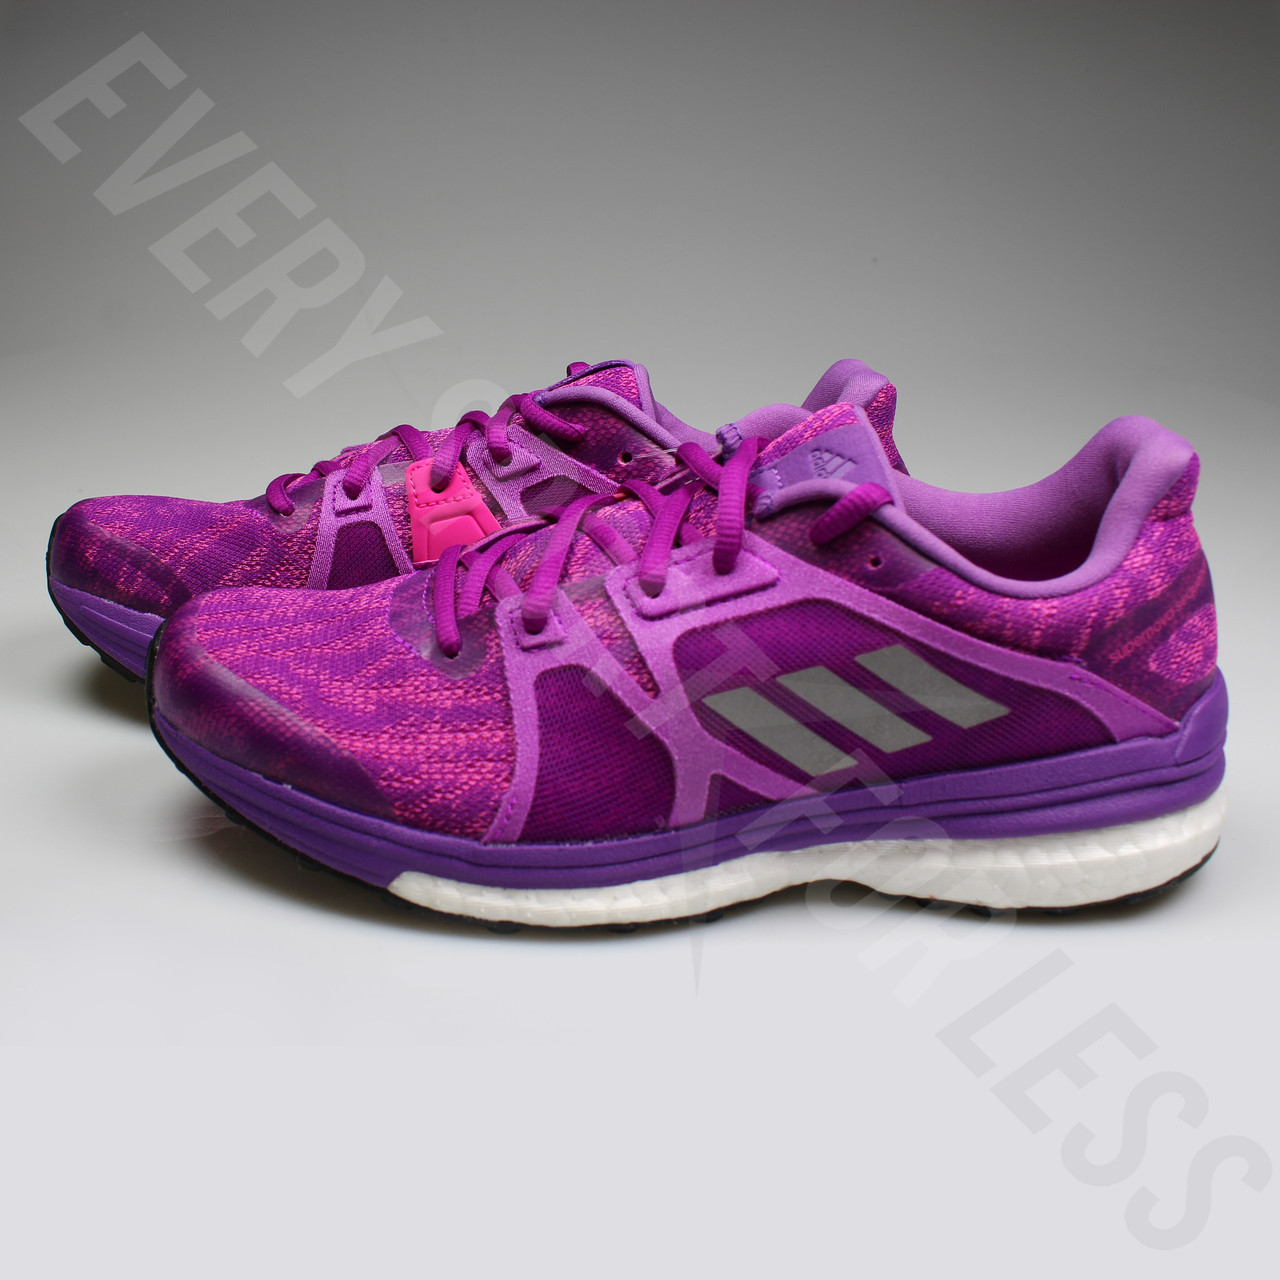 a5e8969f2f9 ... Adidas Supernova Sequence 9 Women s Running Shoes AQ3548 - Purple